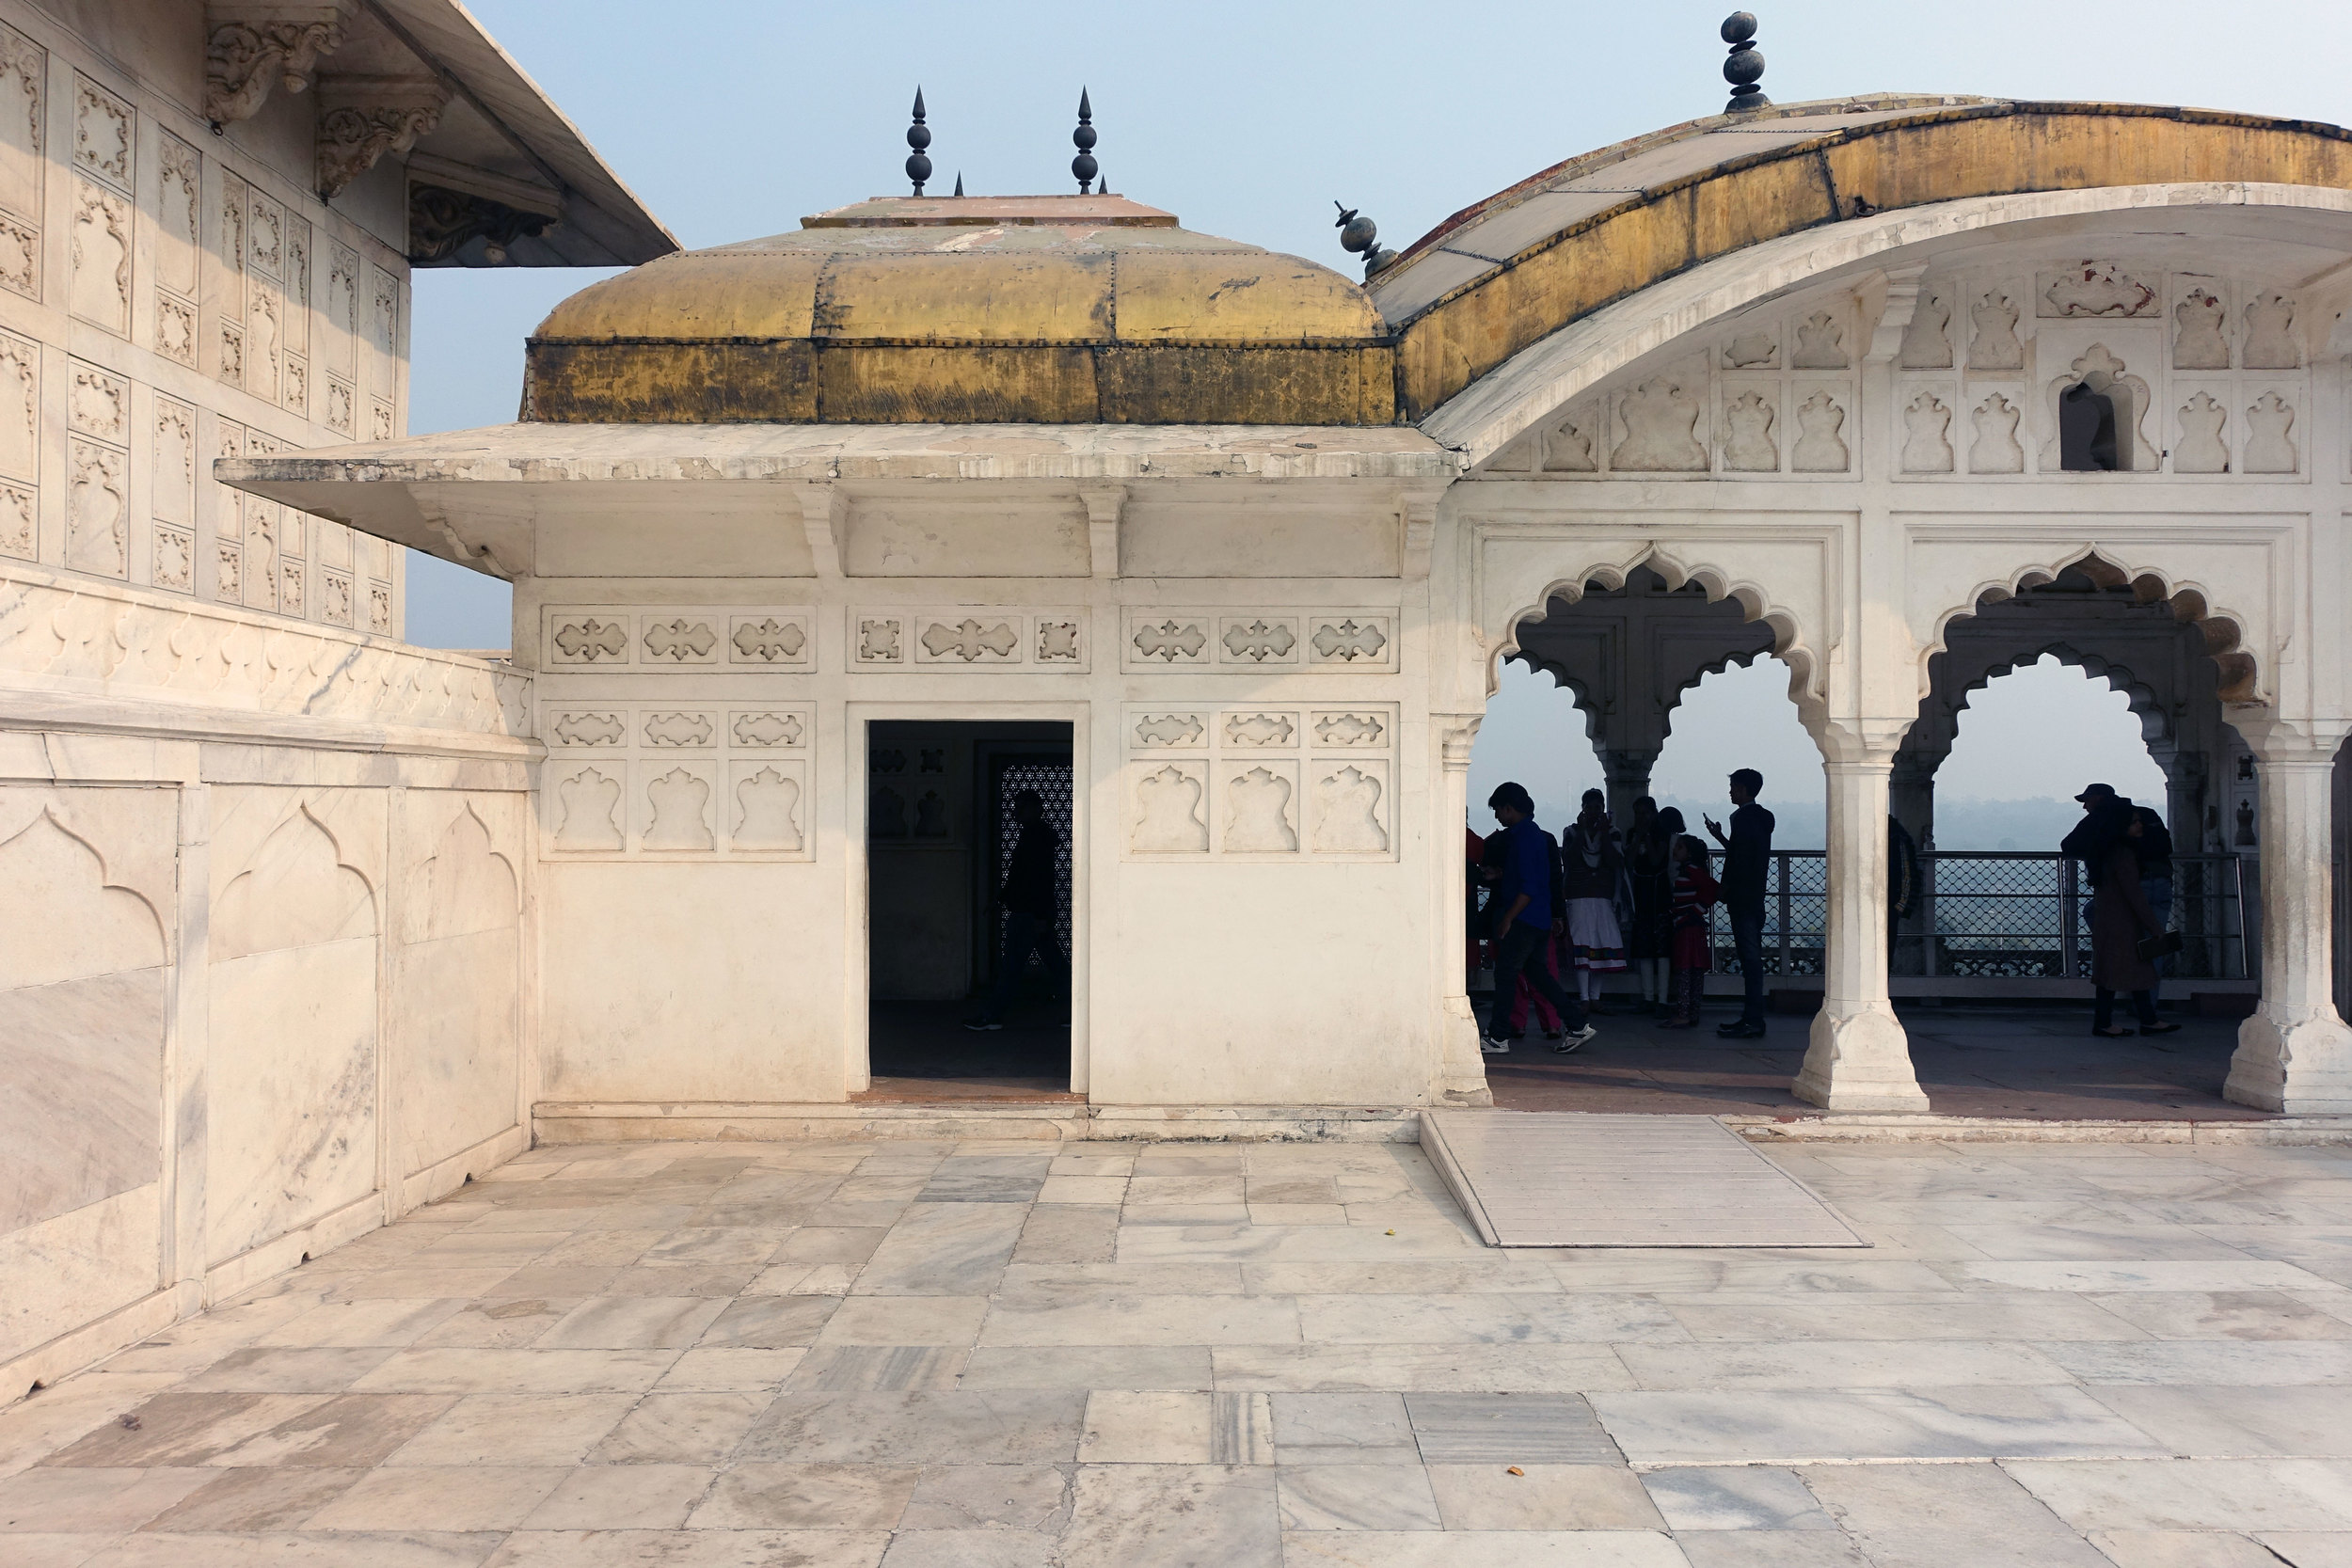 The other side of the  Jahangir Palace was the Harem where only women and Eunuch were allowed